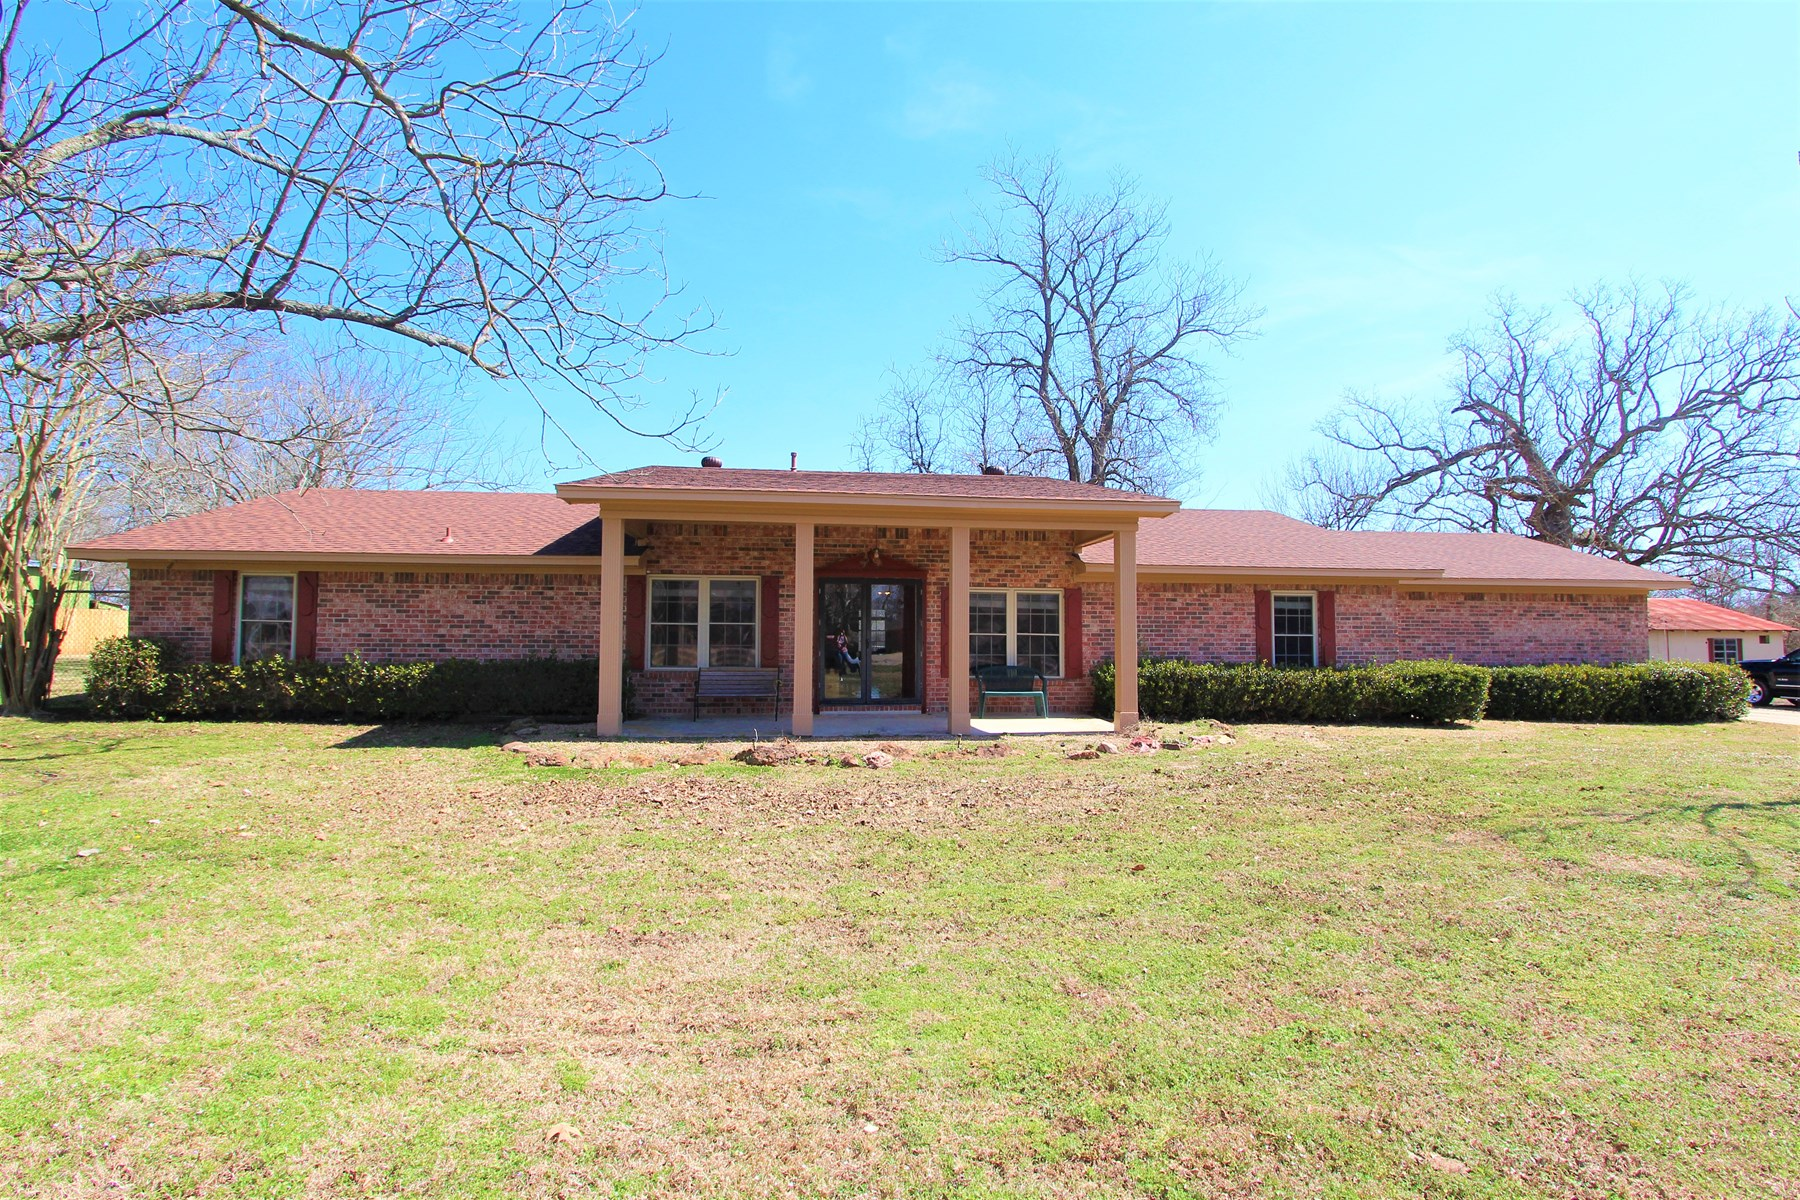 Country Home For Sale Blossom Texas Lamar County